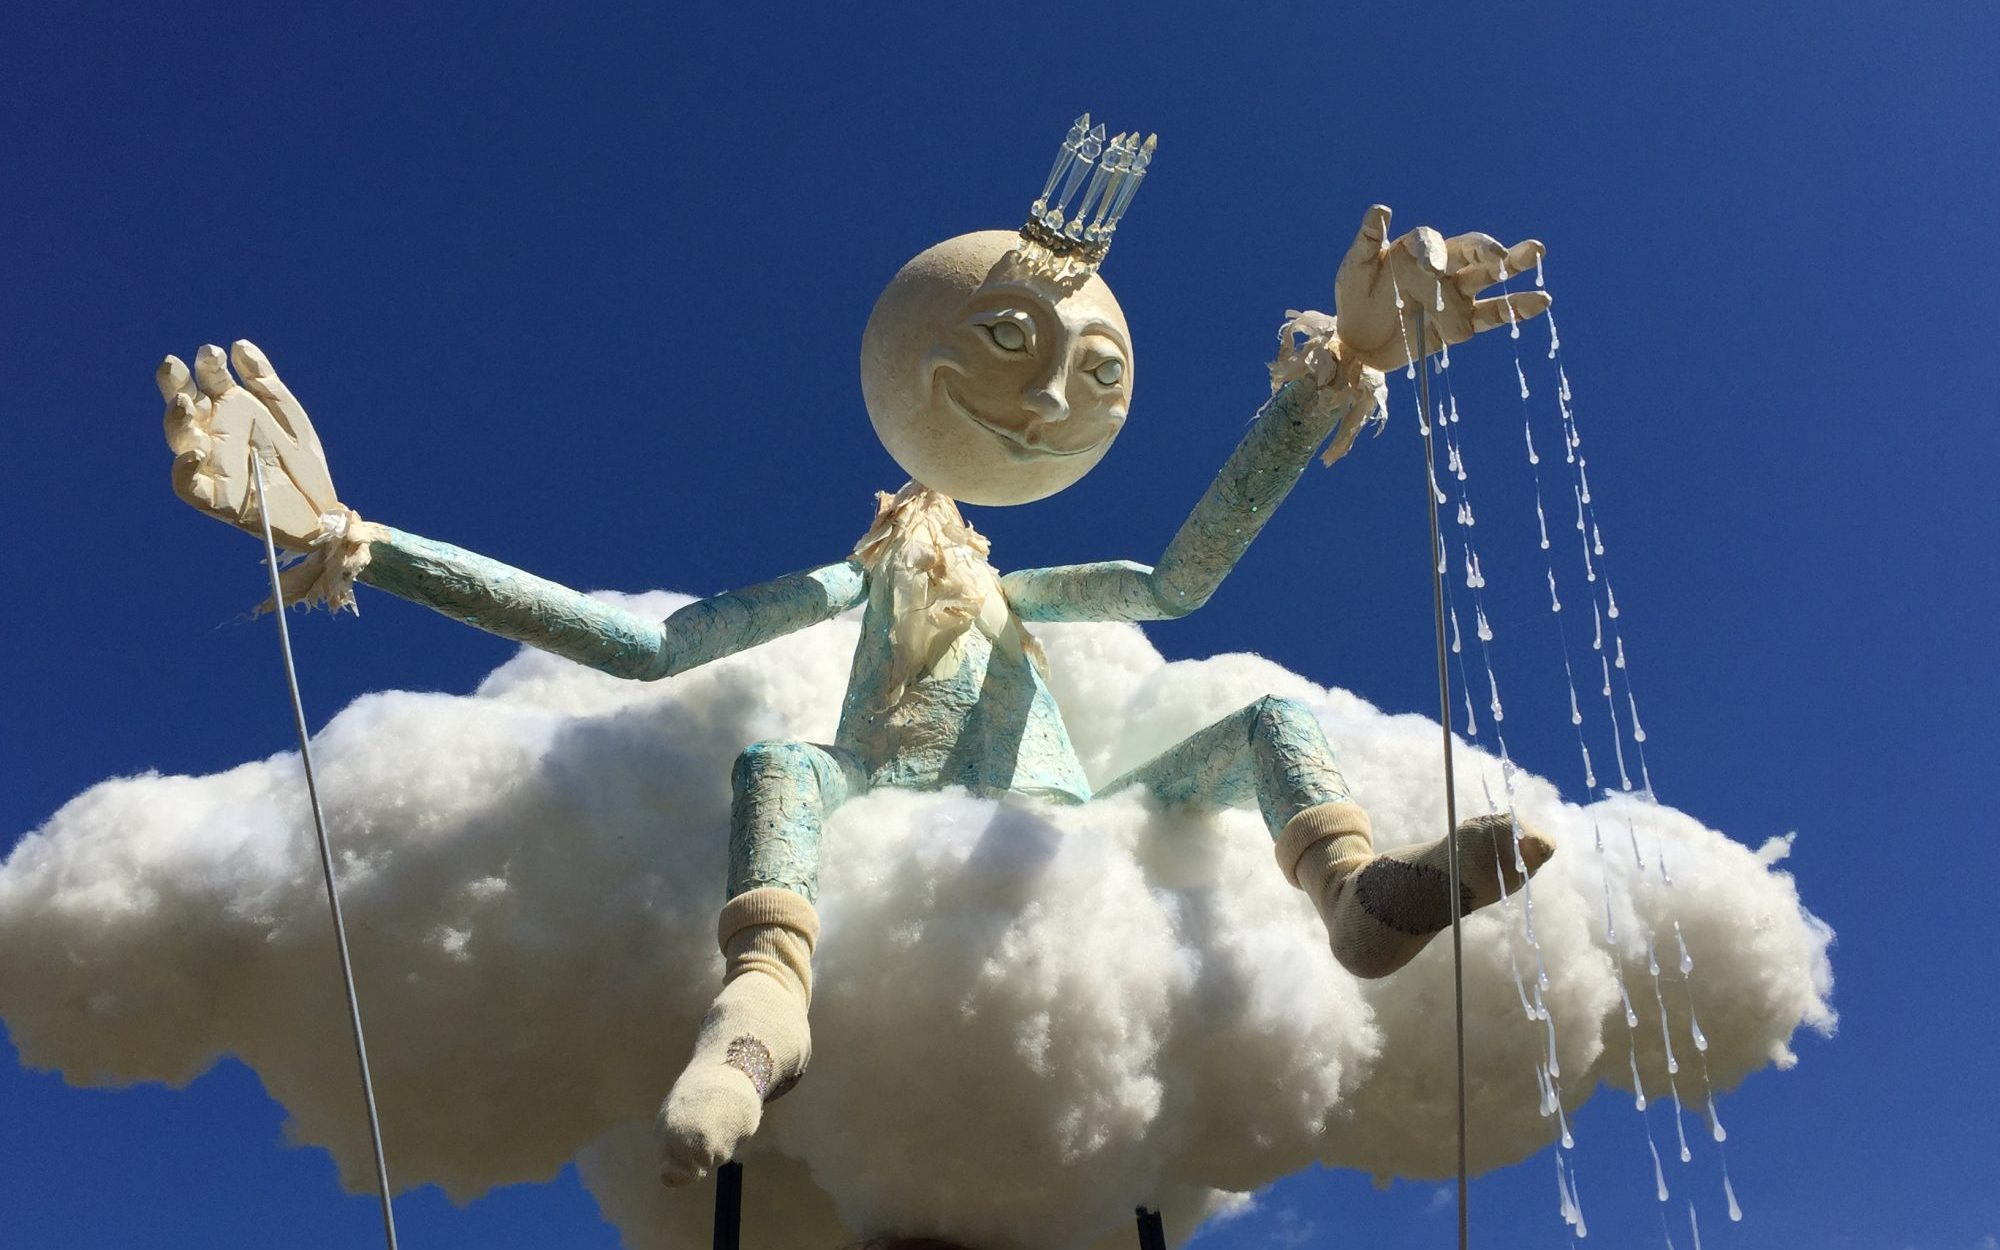 Moon faced walkabout puppet sat on a cloud